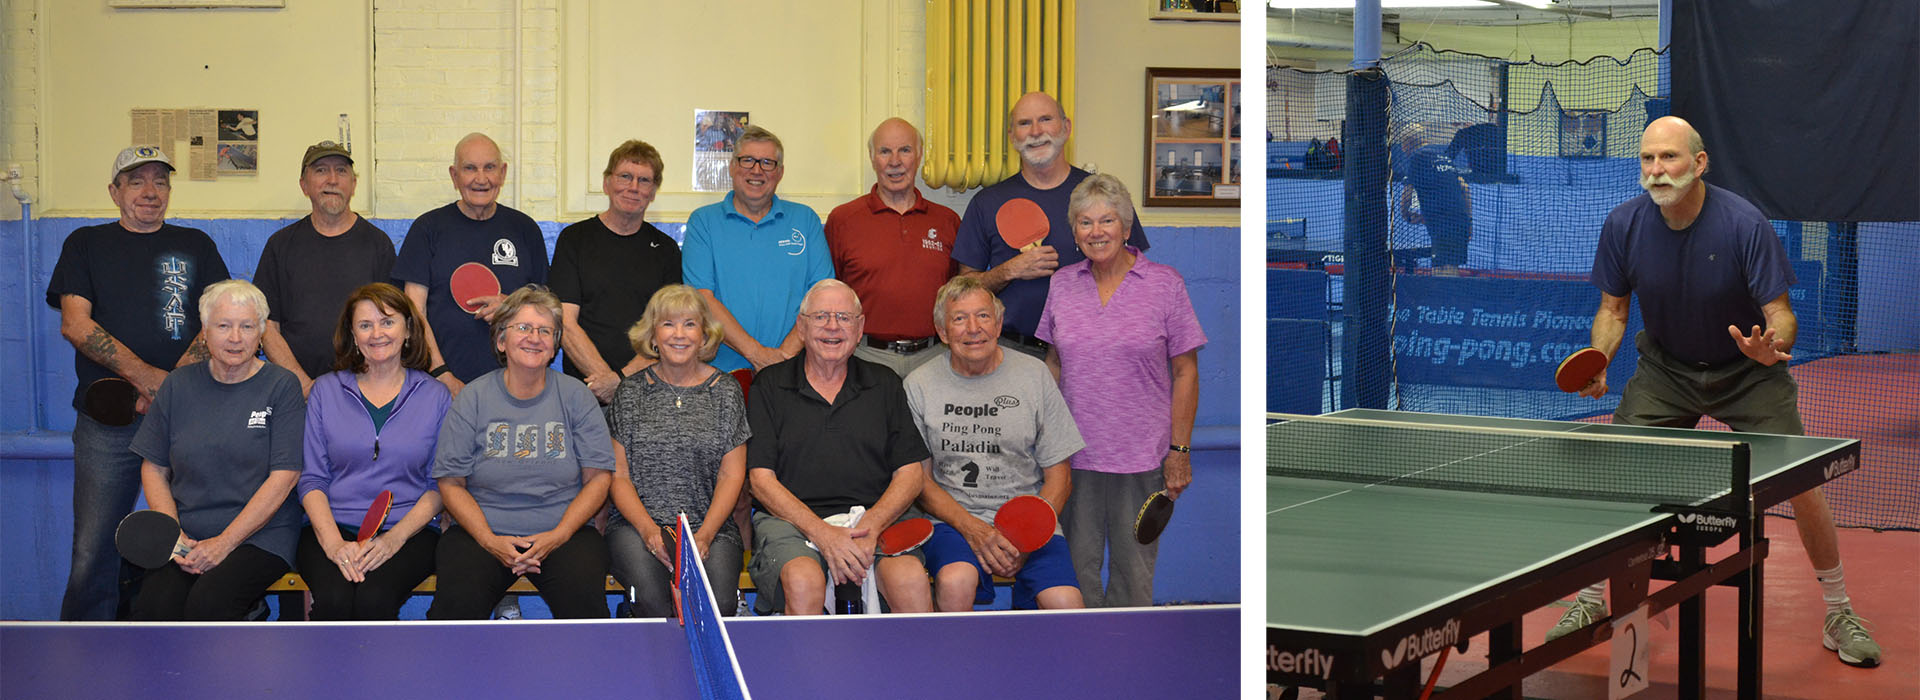 left: a group of table tennis players posting in a group photo behind a game table, right: a man actively playing table tennis